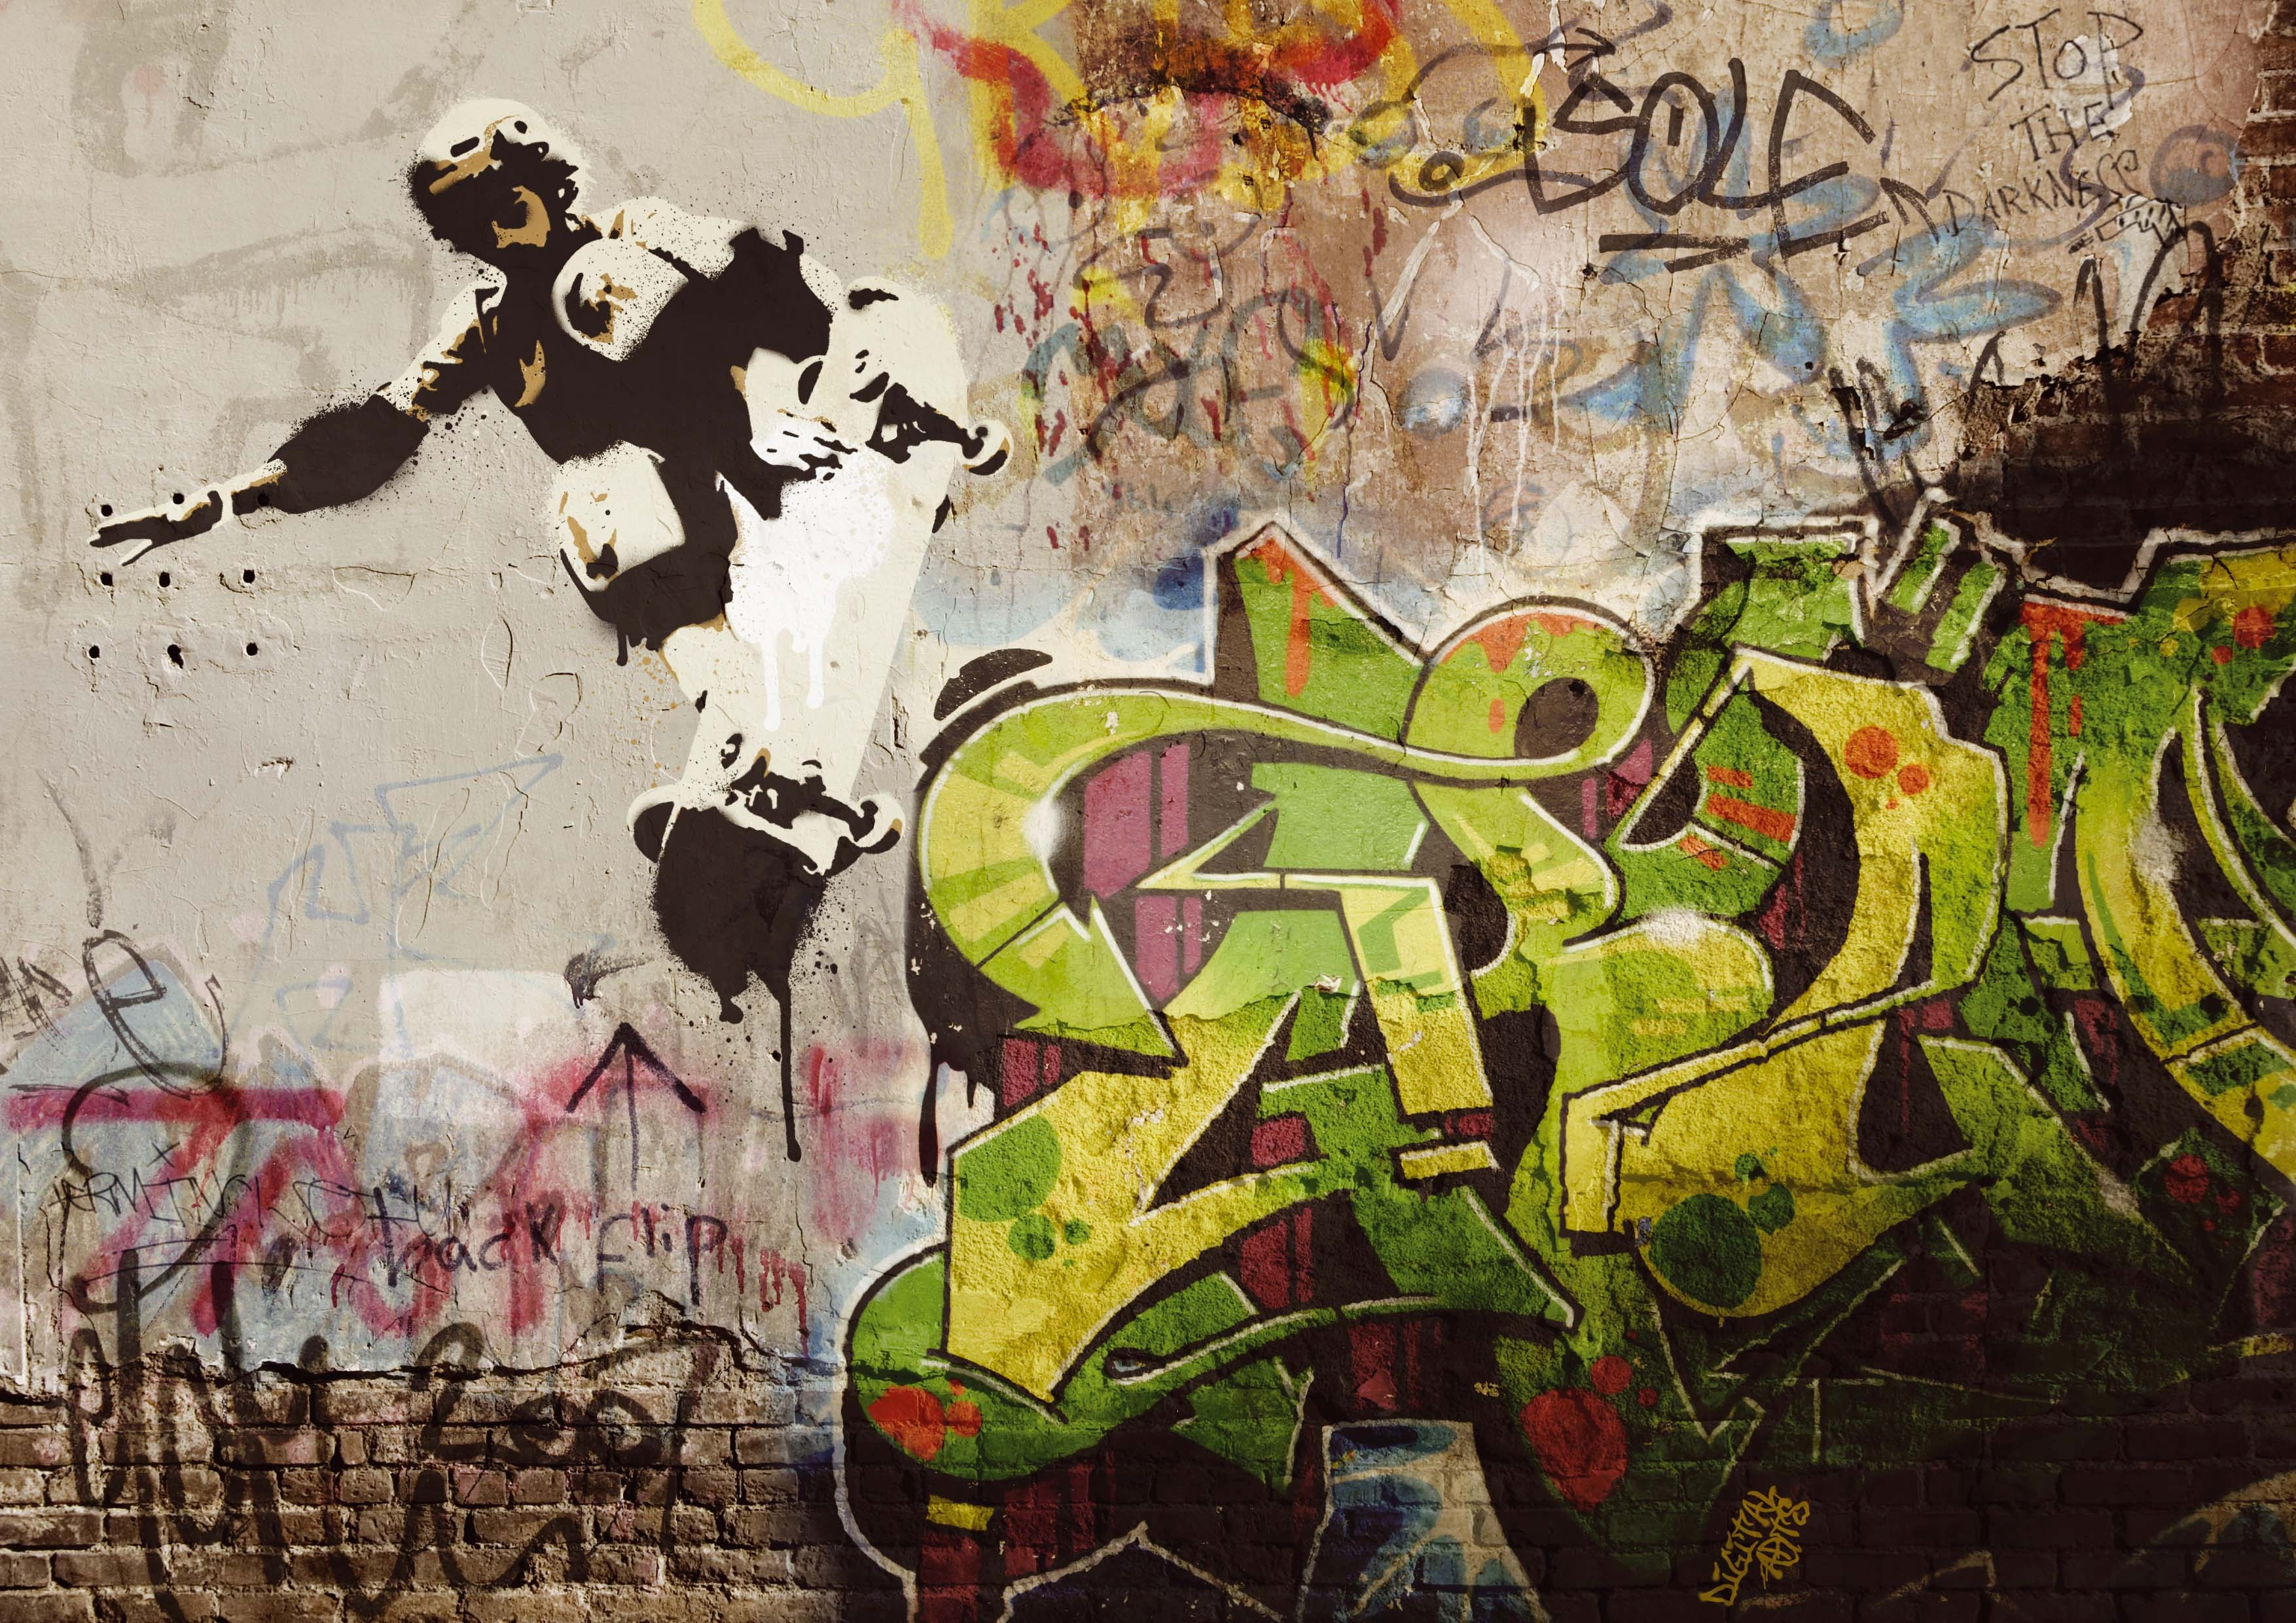 Design your own graffiti text effect photoshop tutorial.